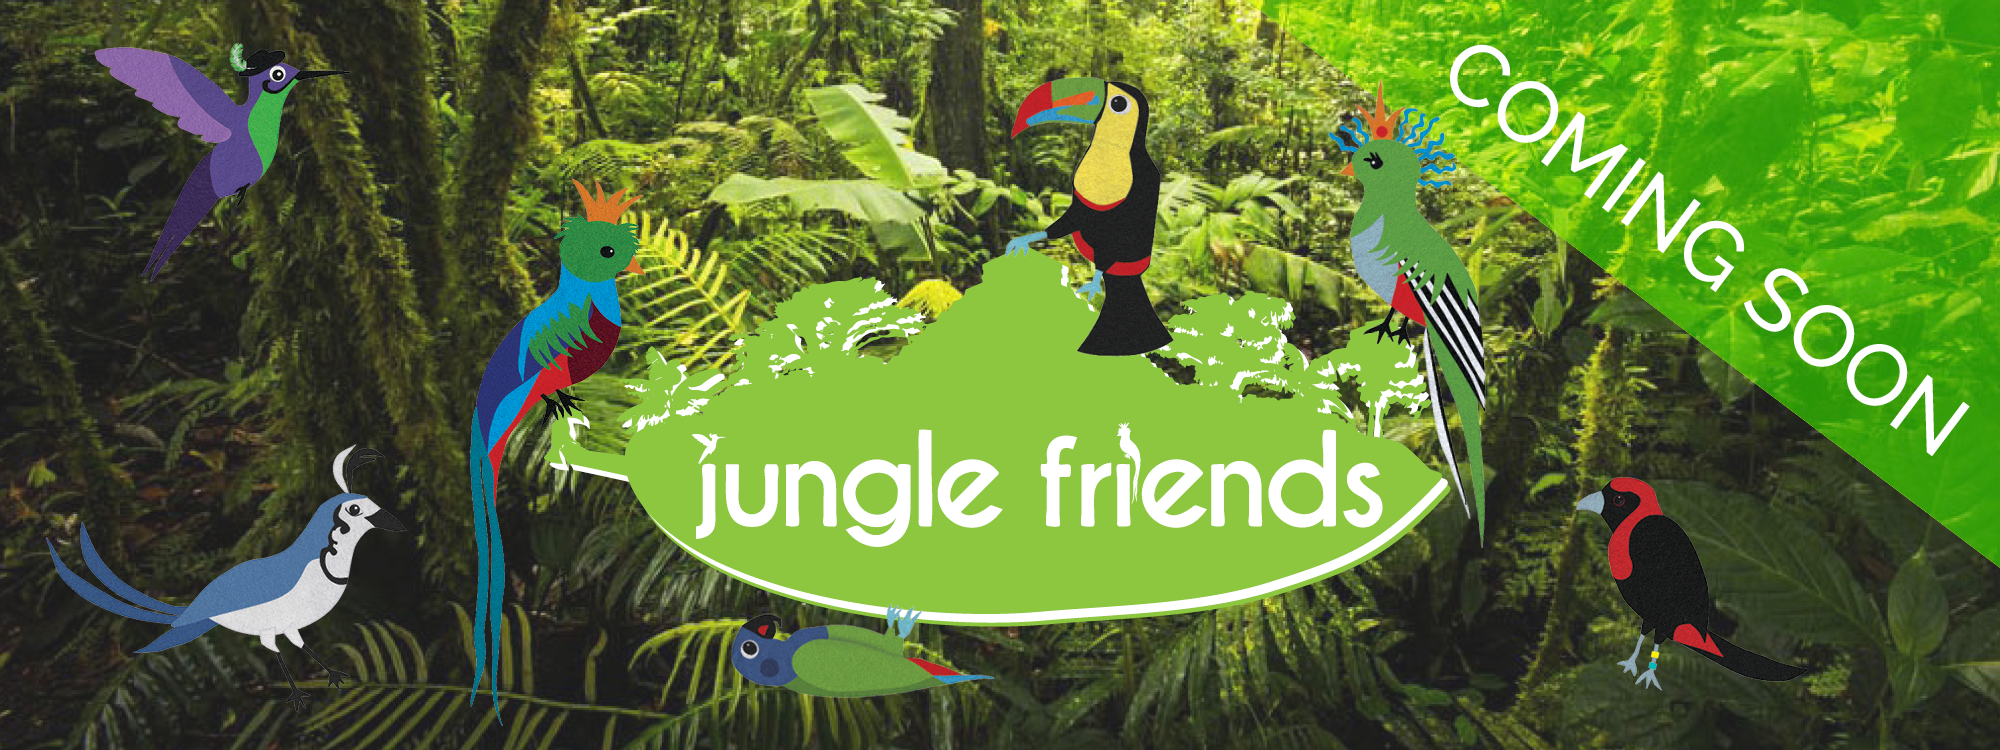 Jungle_Friends_Banner.png